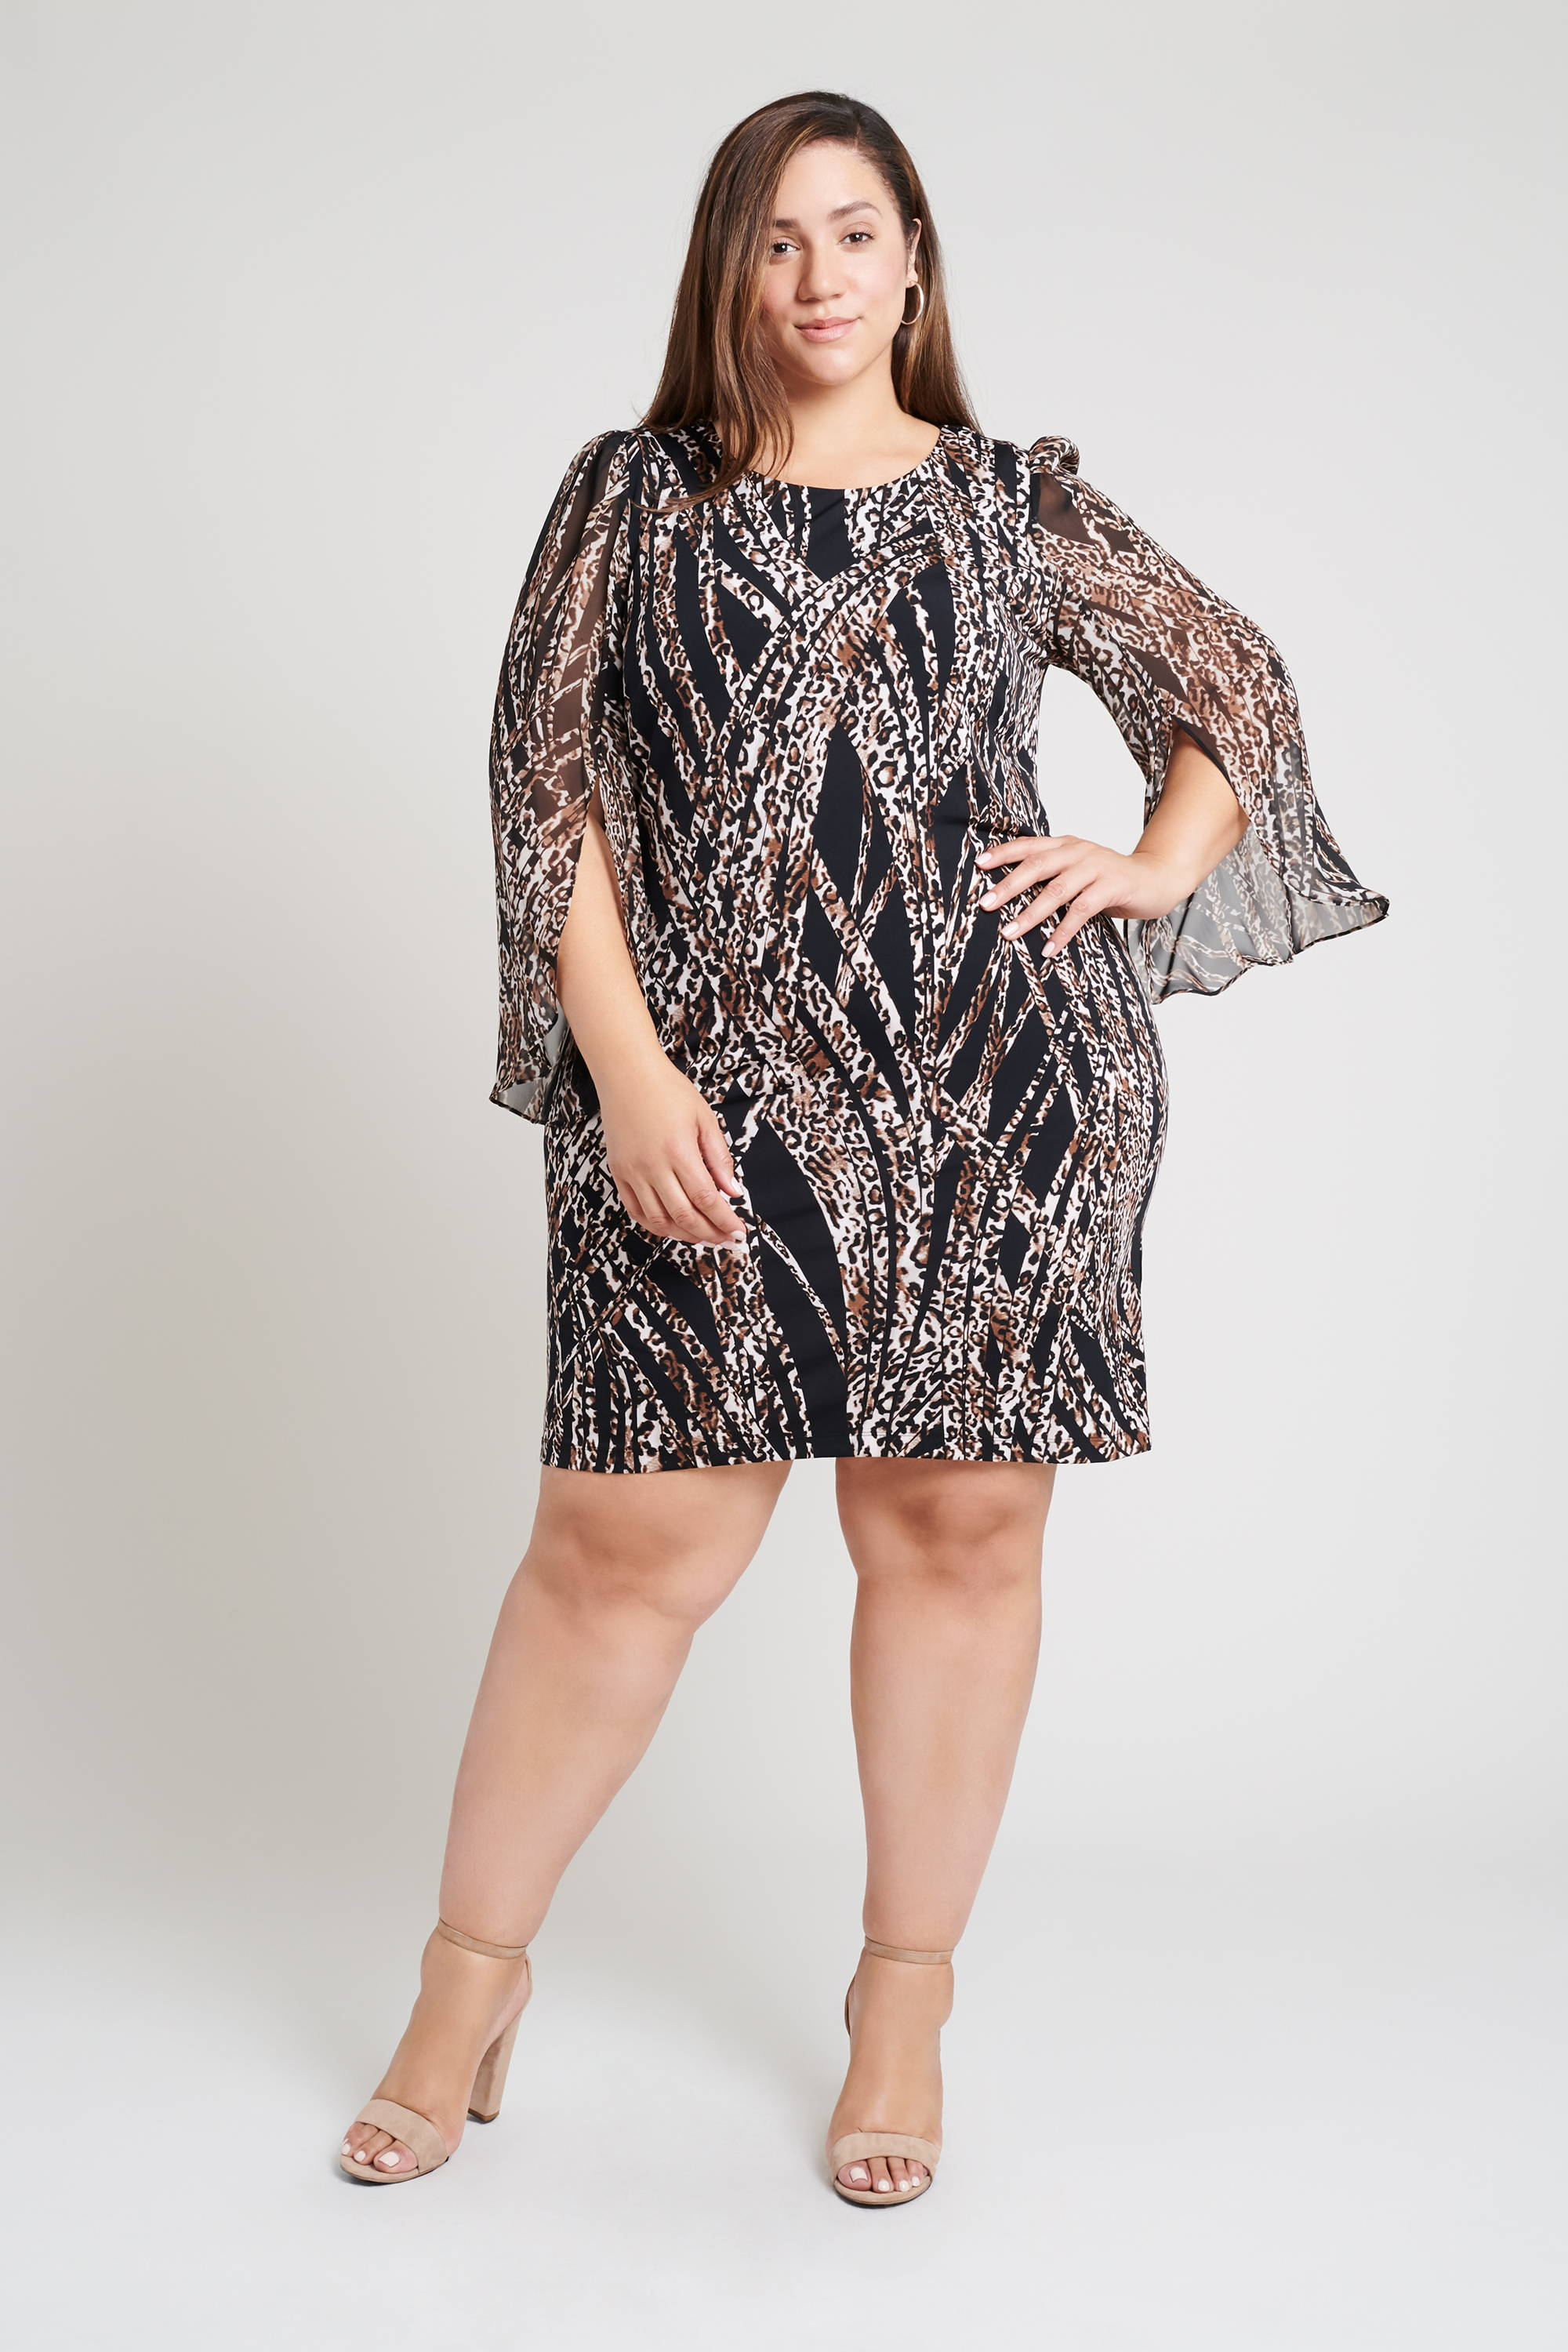 tan brunette long haired plus size woman wearing flirty chiffon sleeve connected apparel black and cheetah print stripe mini dress